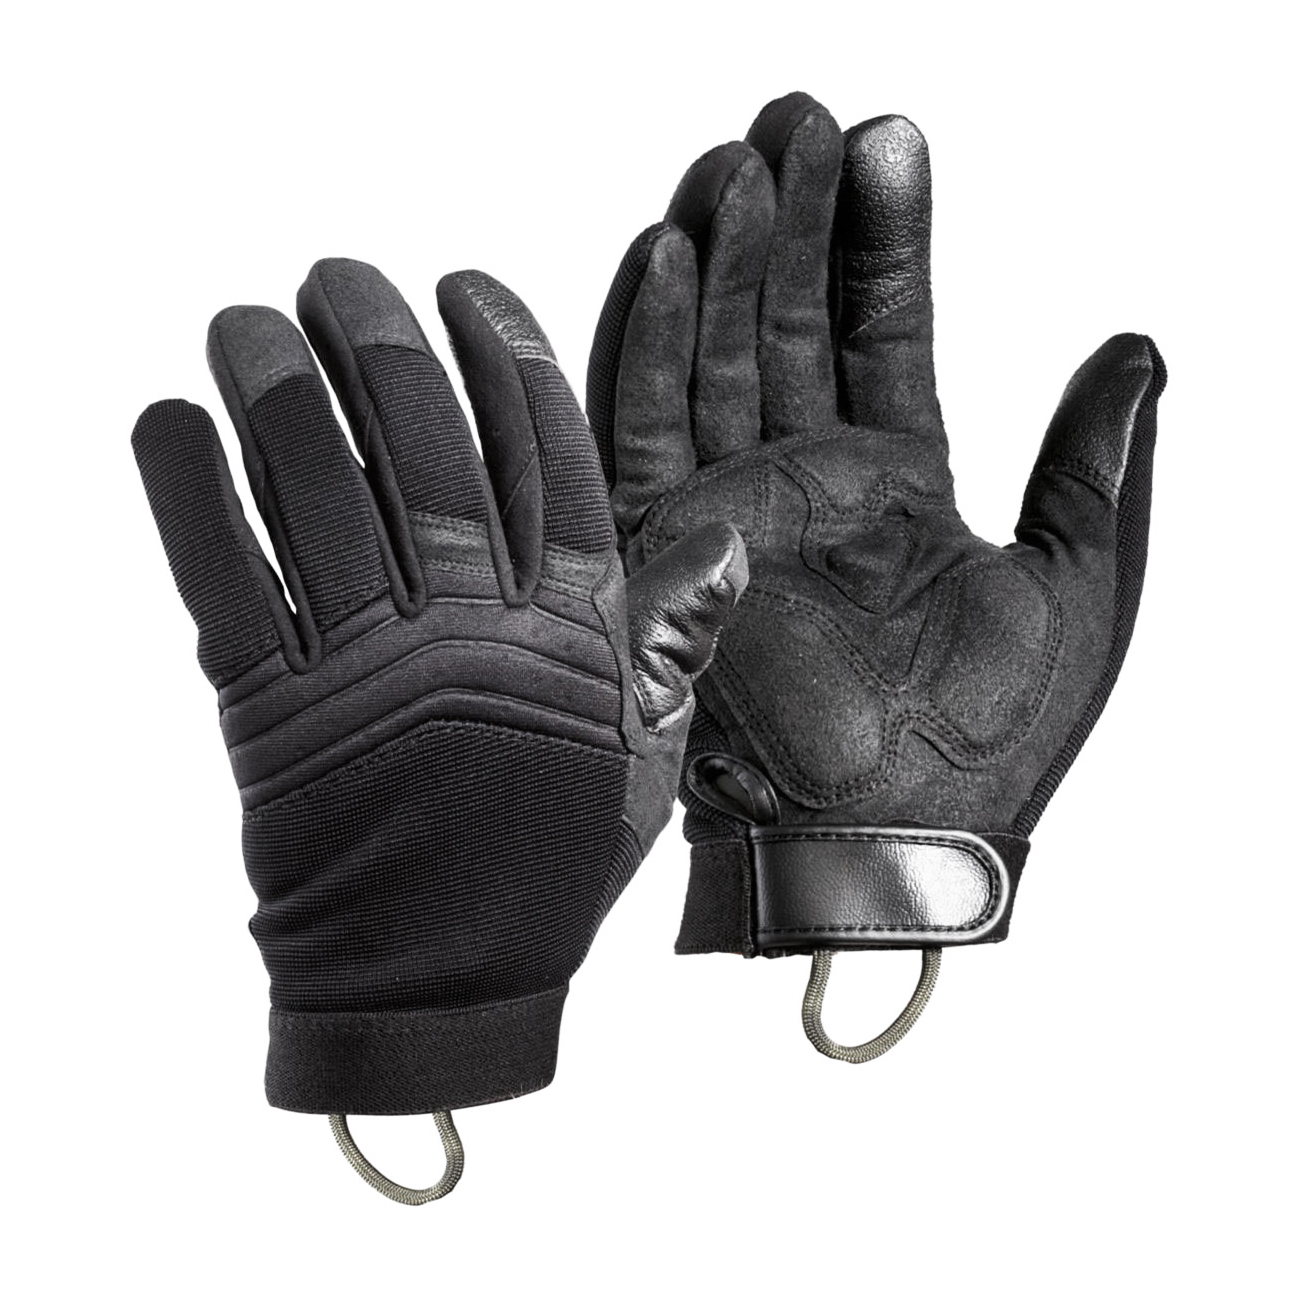 Camelbak MPCT05 Impact CT Tactical Neoprene Padded Gloves - Black